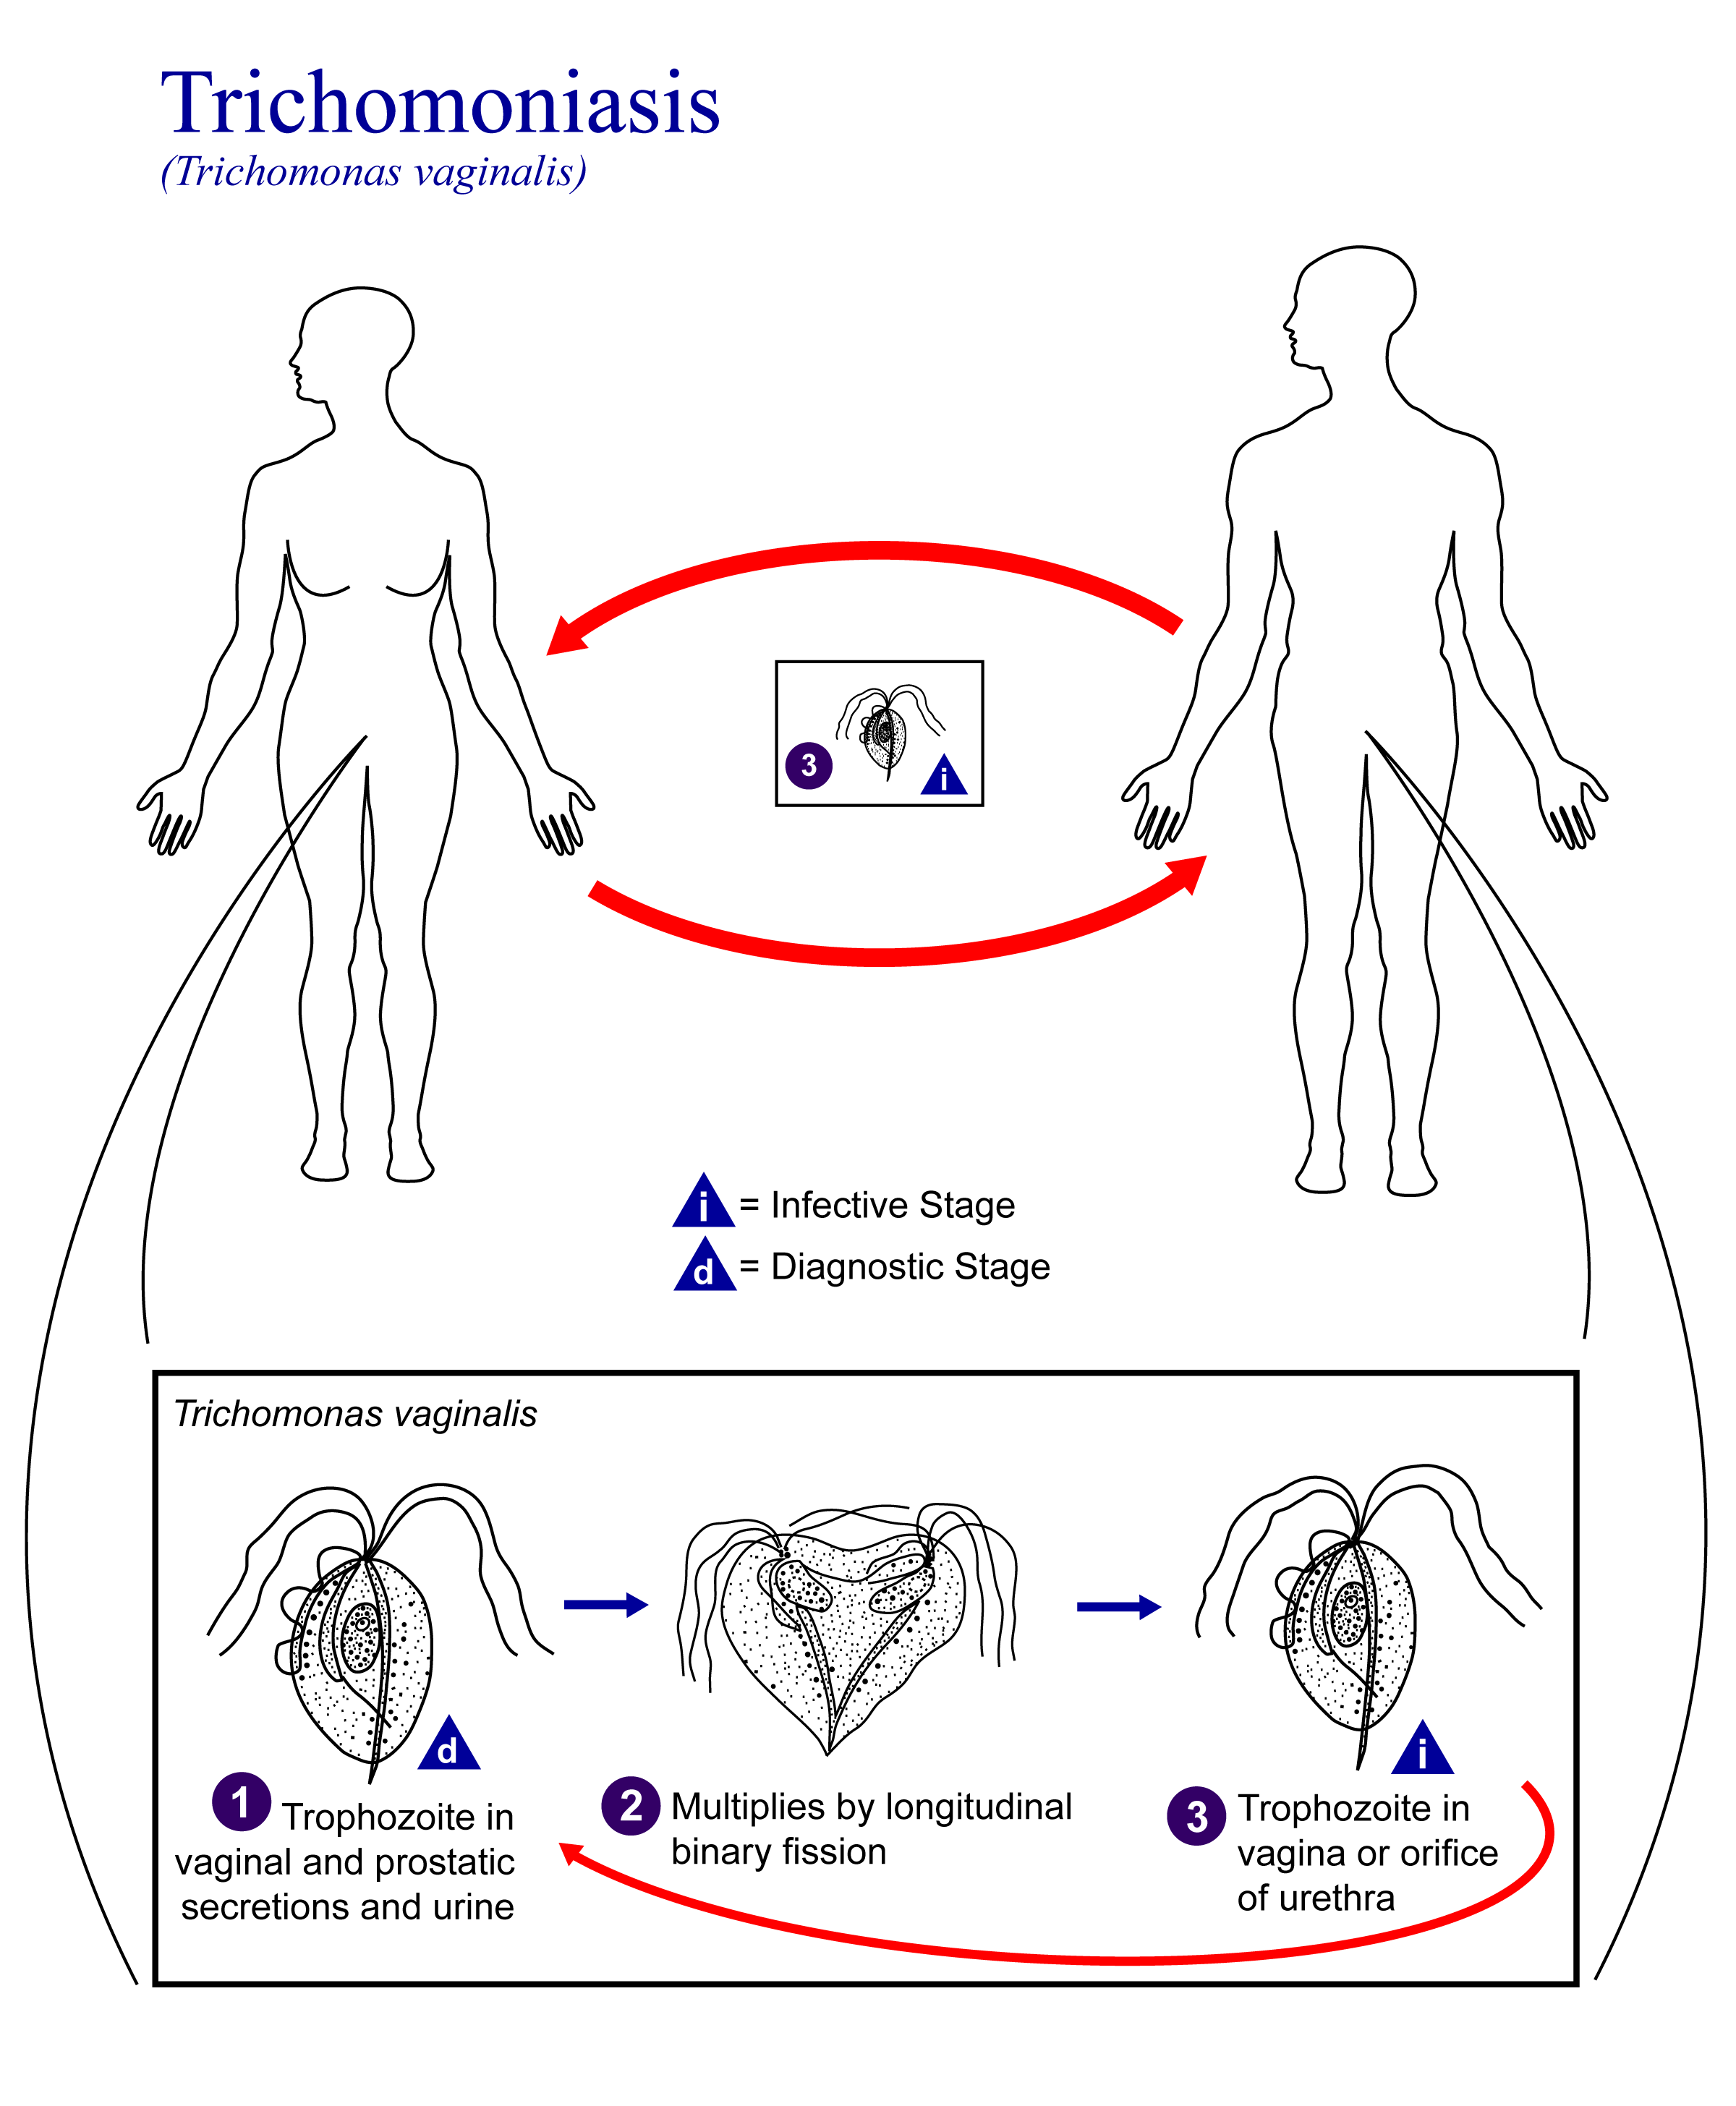 Life cycle of Trichomonas vaginalis, the causative agent of Trichomoniasis.